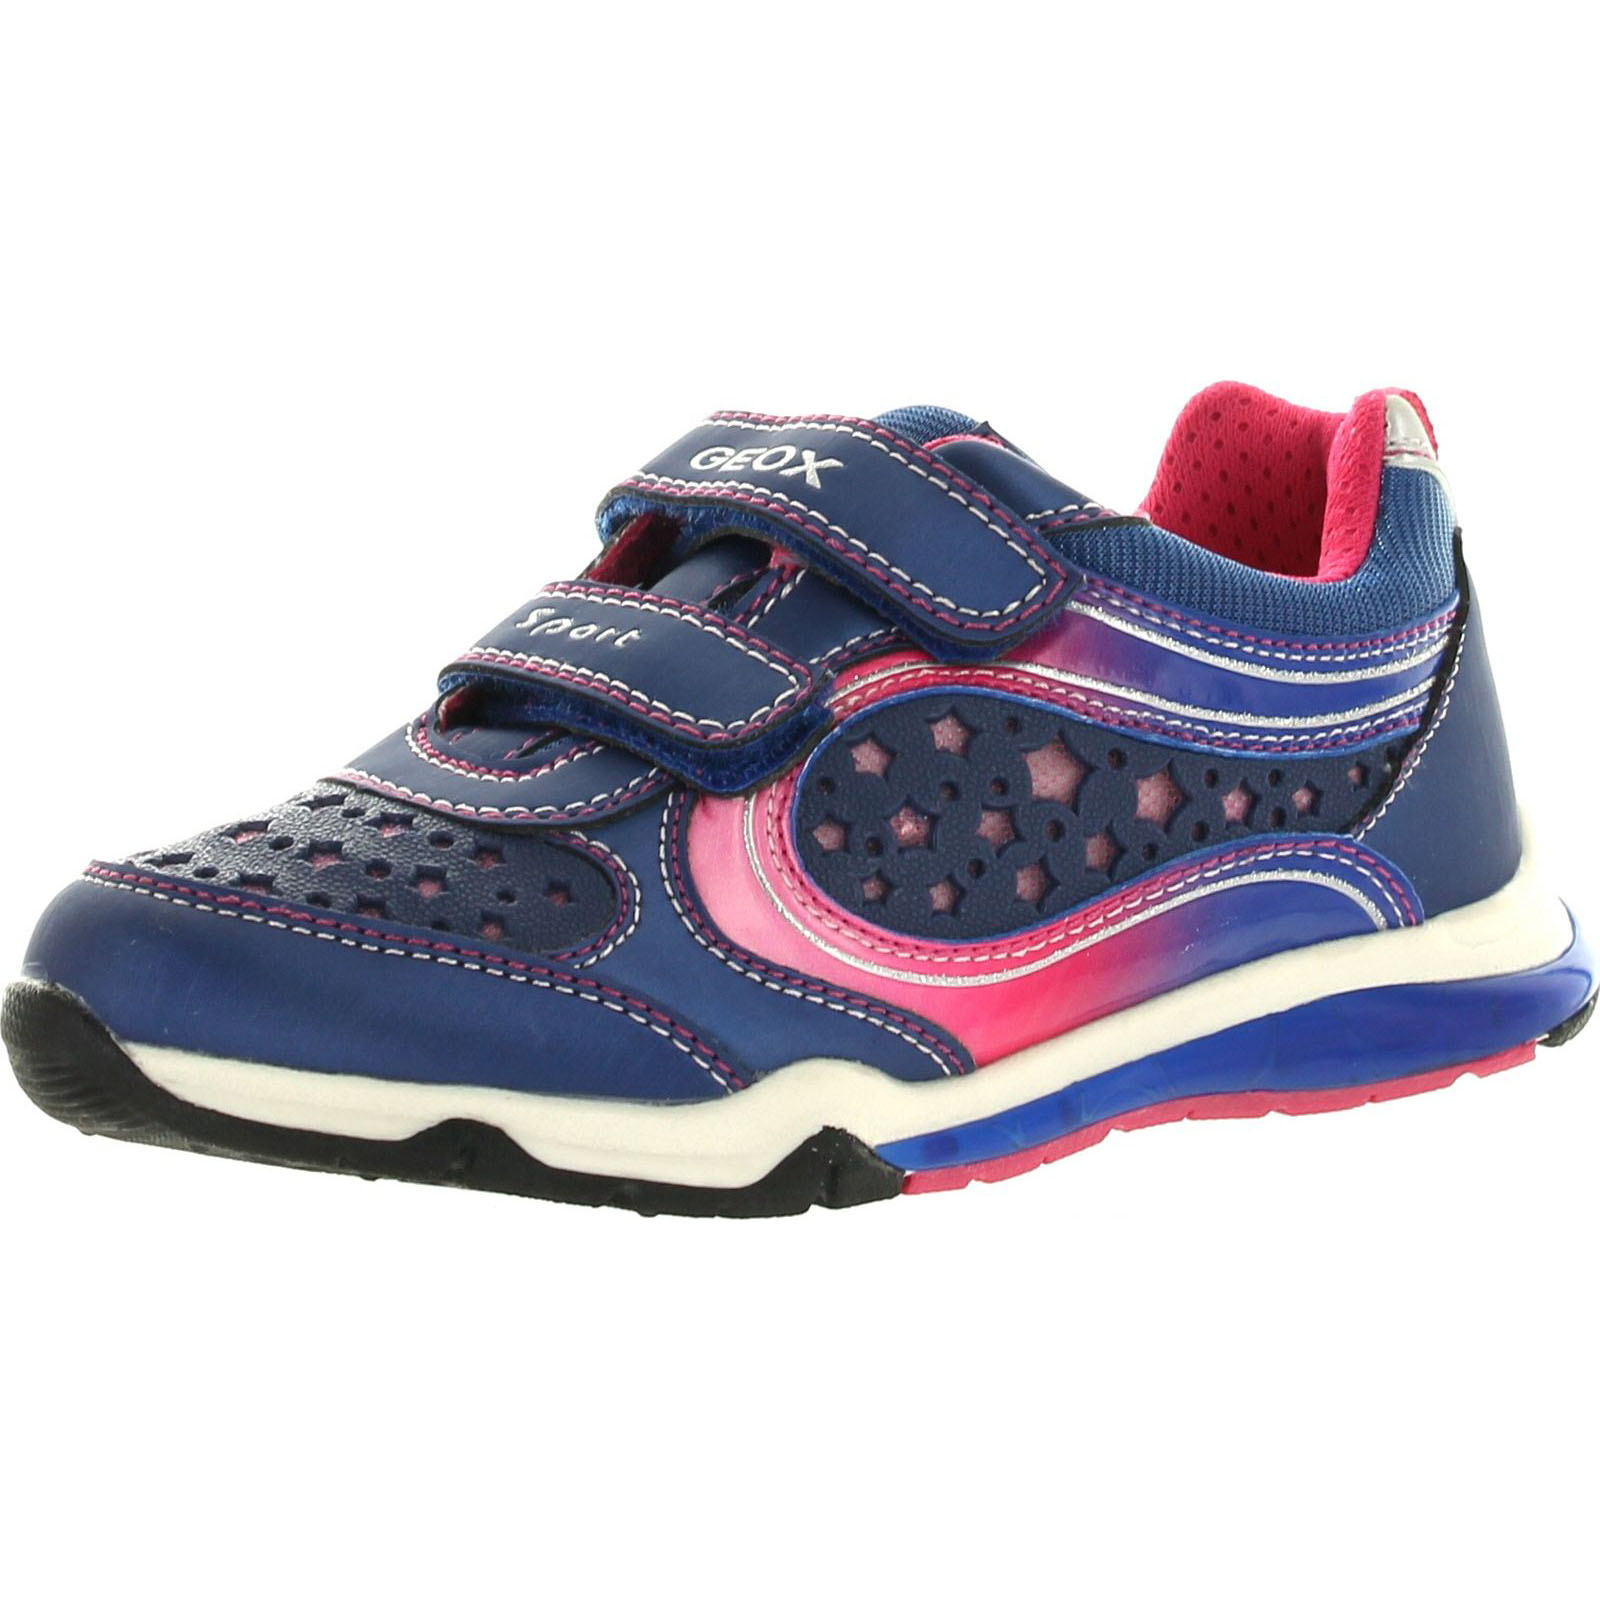 Details about Geox Girls Magica16 Fashion Light Up Sneakers